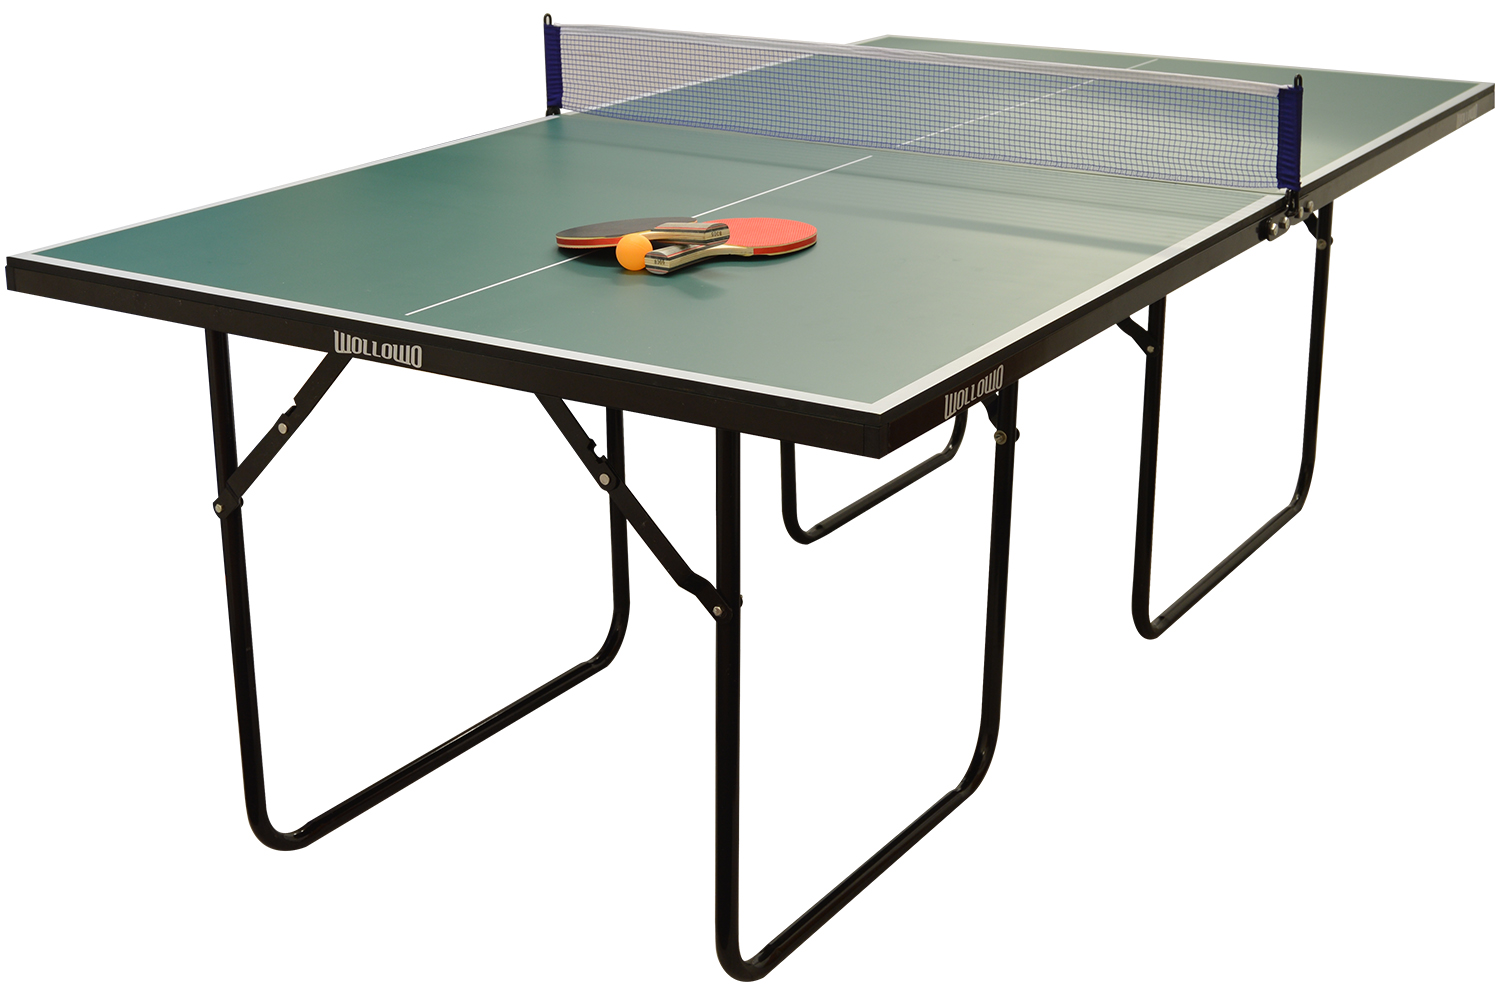 wollowo 3 4 size table tennis table table tennis. Black Bedroom Furniture Sets. Home Design Ideas